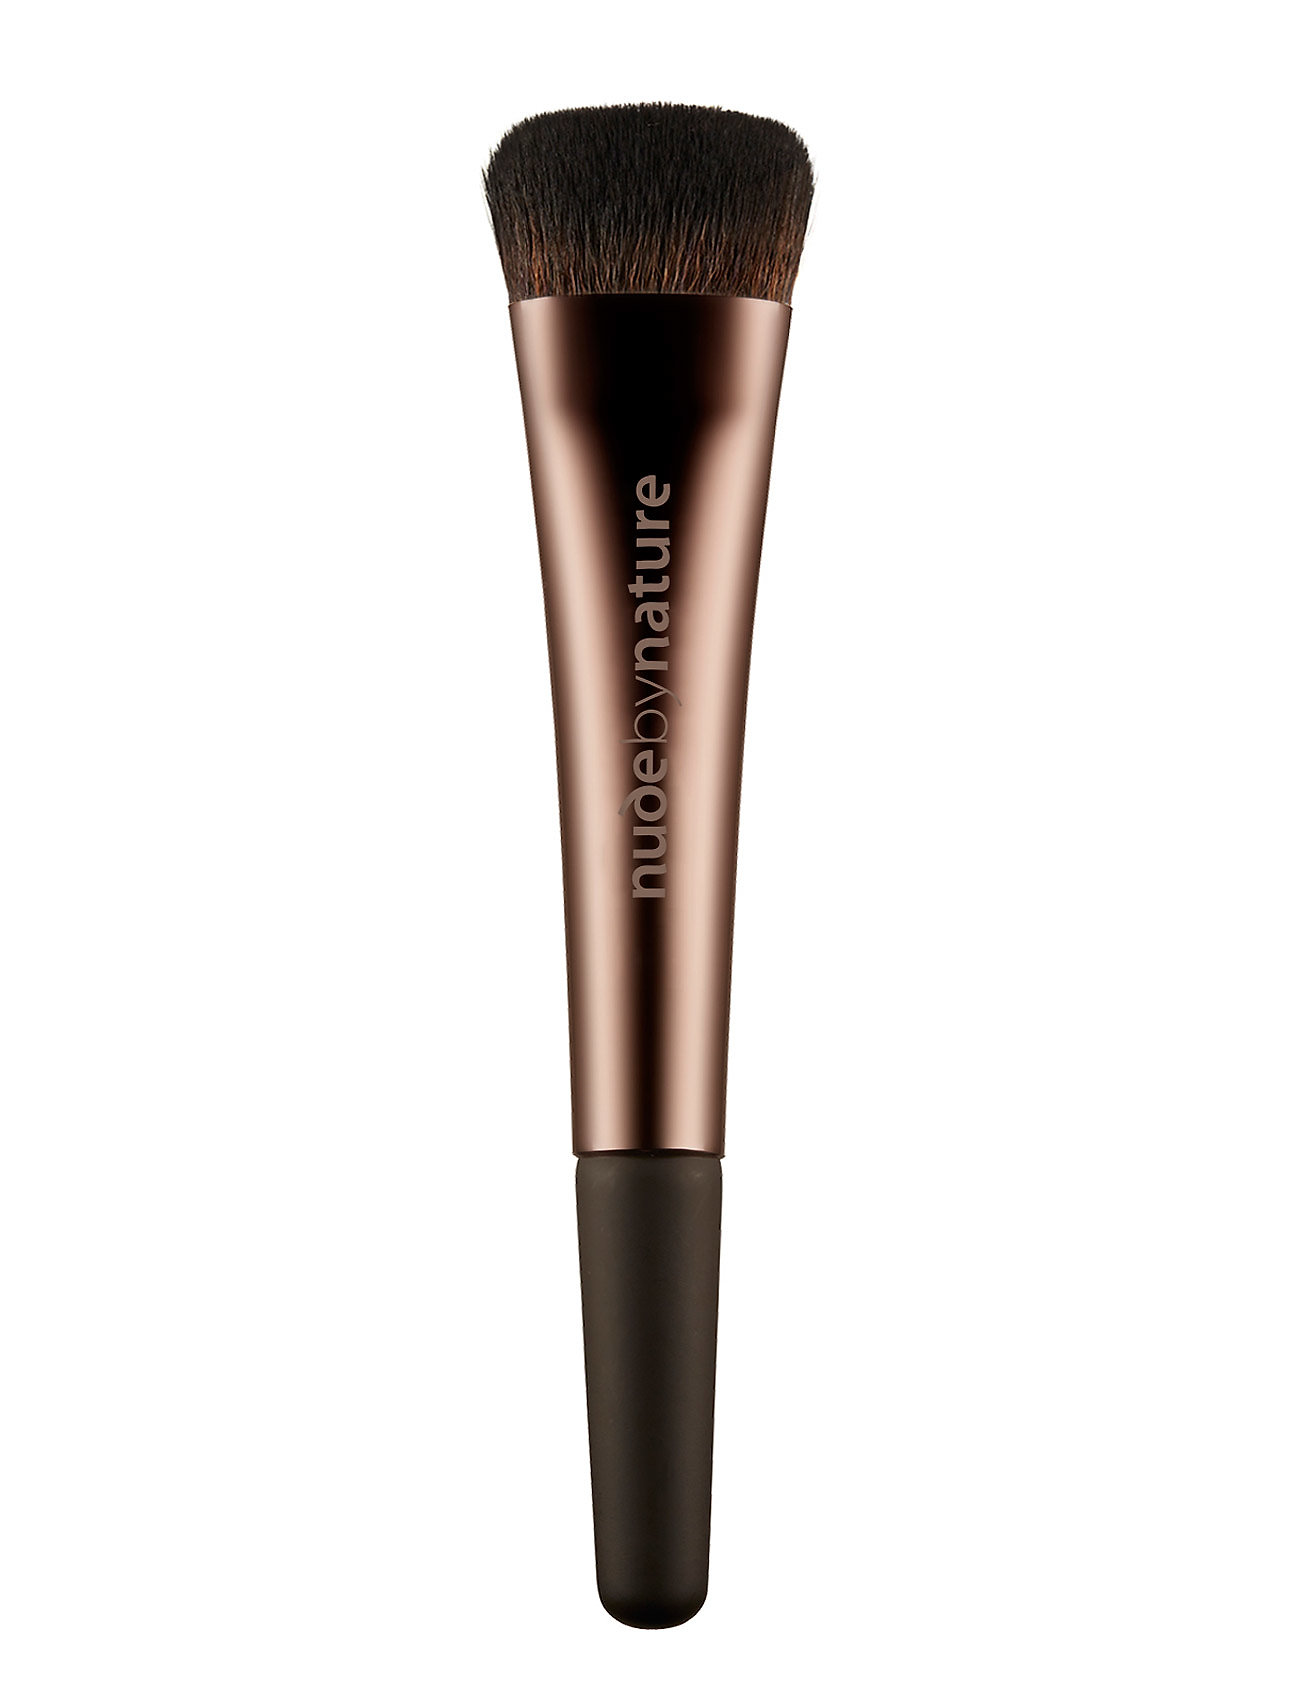 Image of Brushes 18 Bb Creambrush Makeupbørste Makeup Nude Nude By Nature (2778815573)